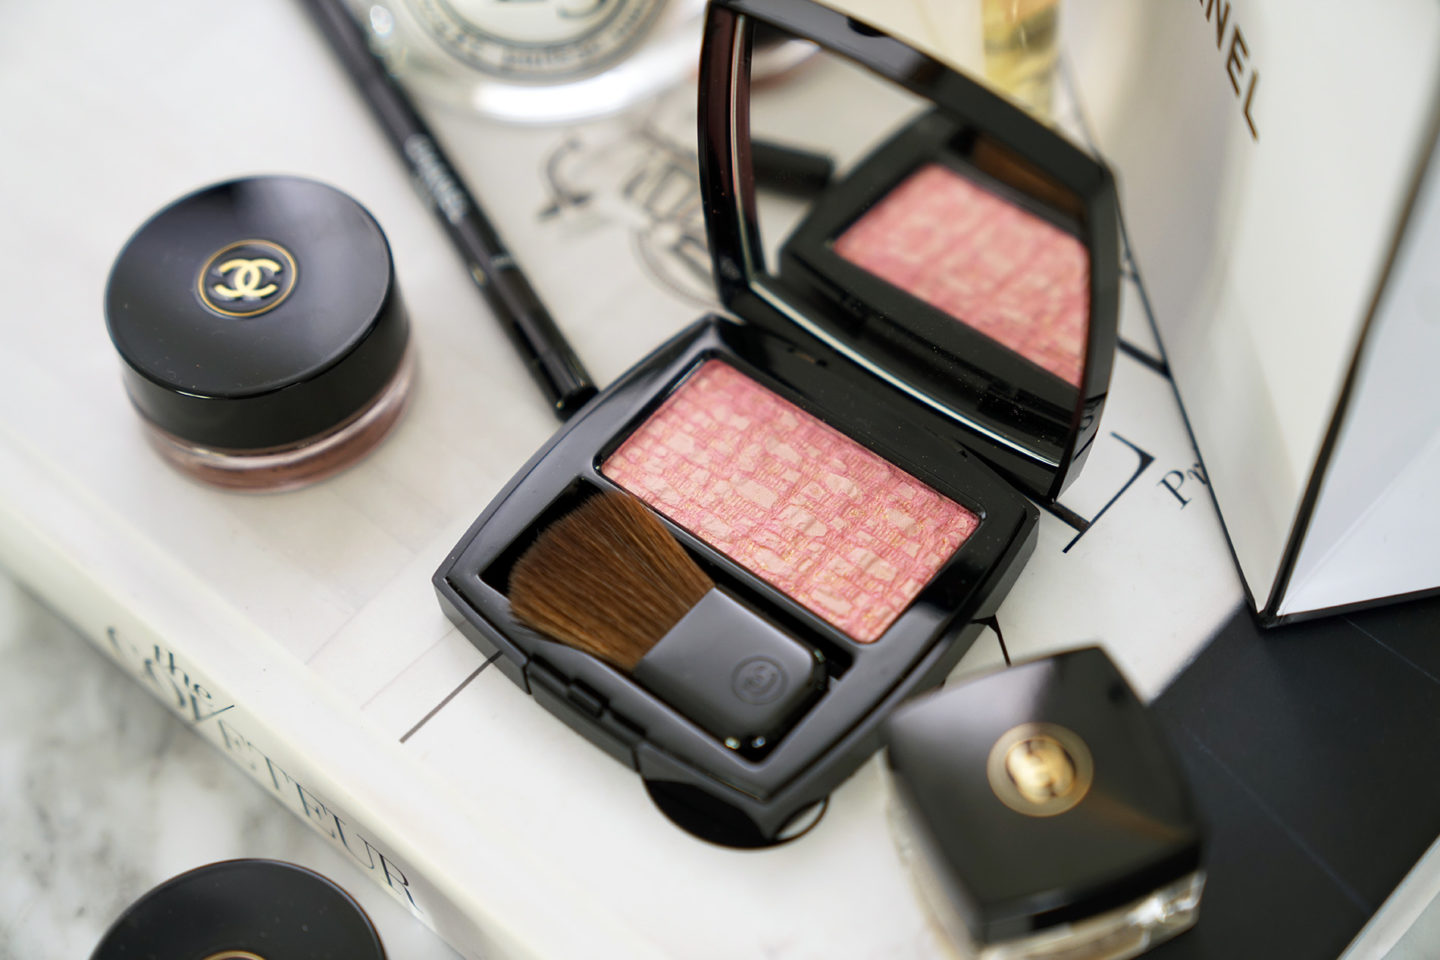 Chanel Les Tissages De Chanel Tweed Pink Blush